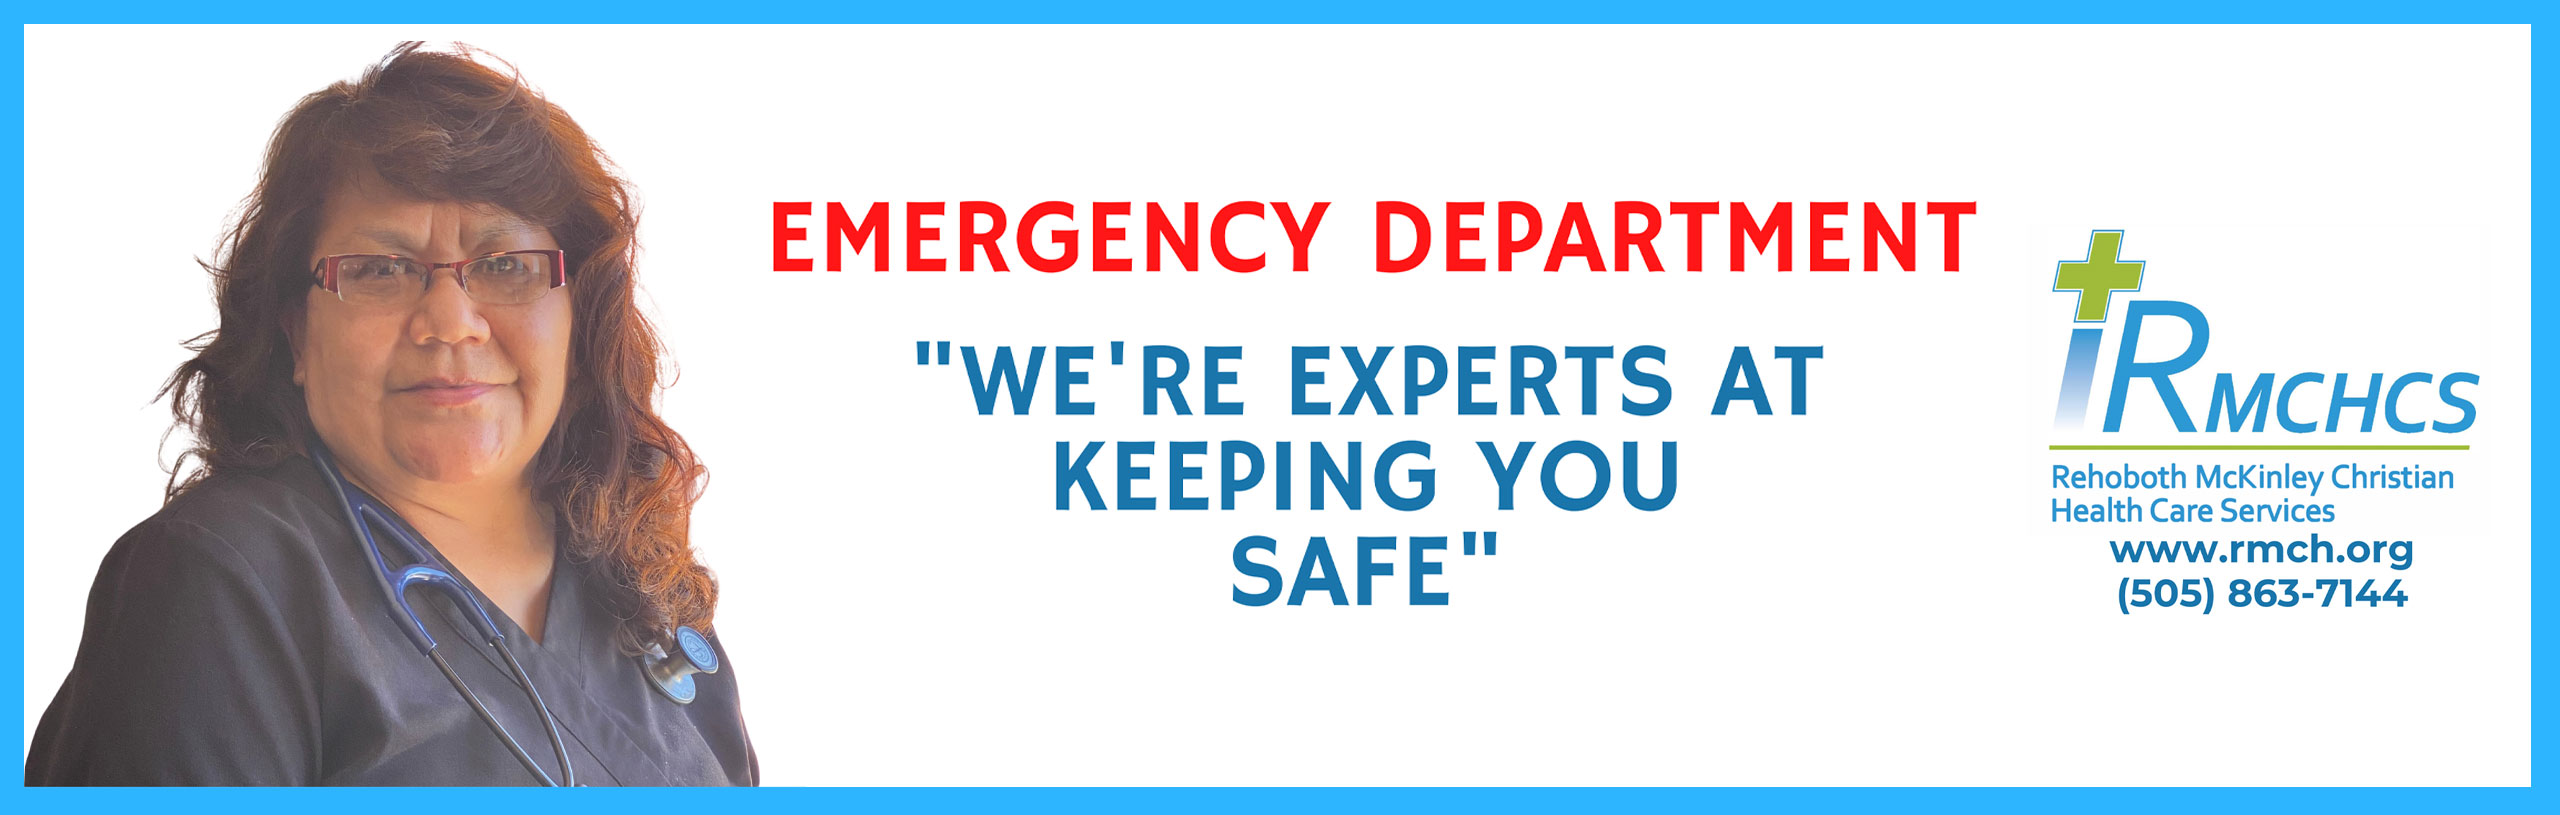 Emergency Department We're experts at keeping you safe.